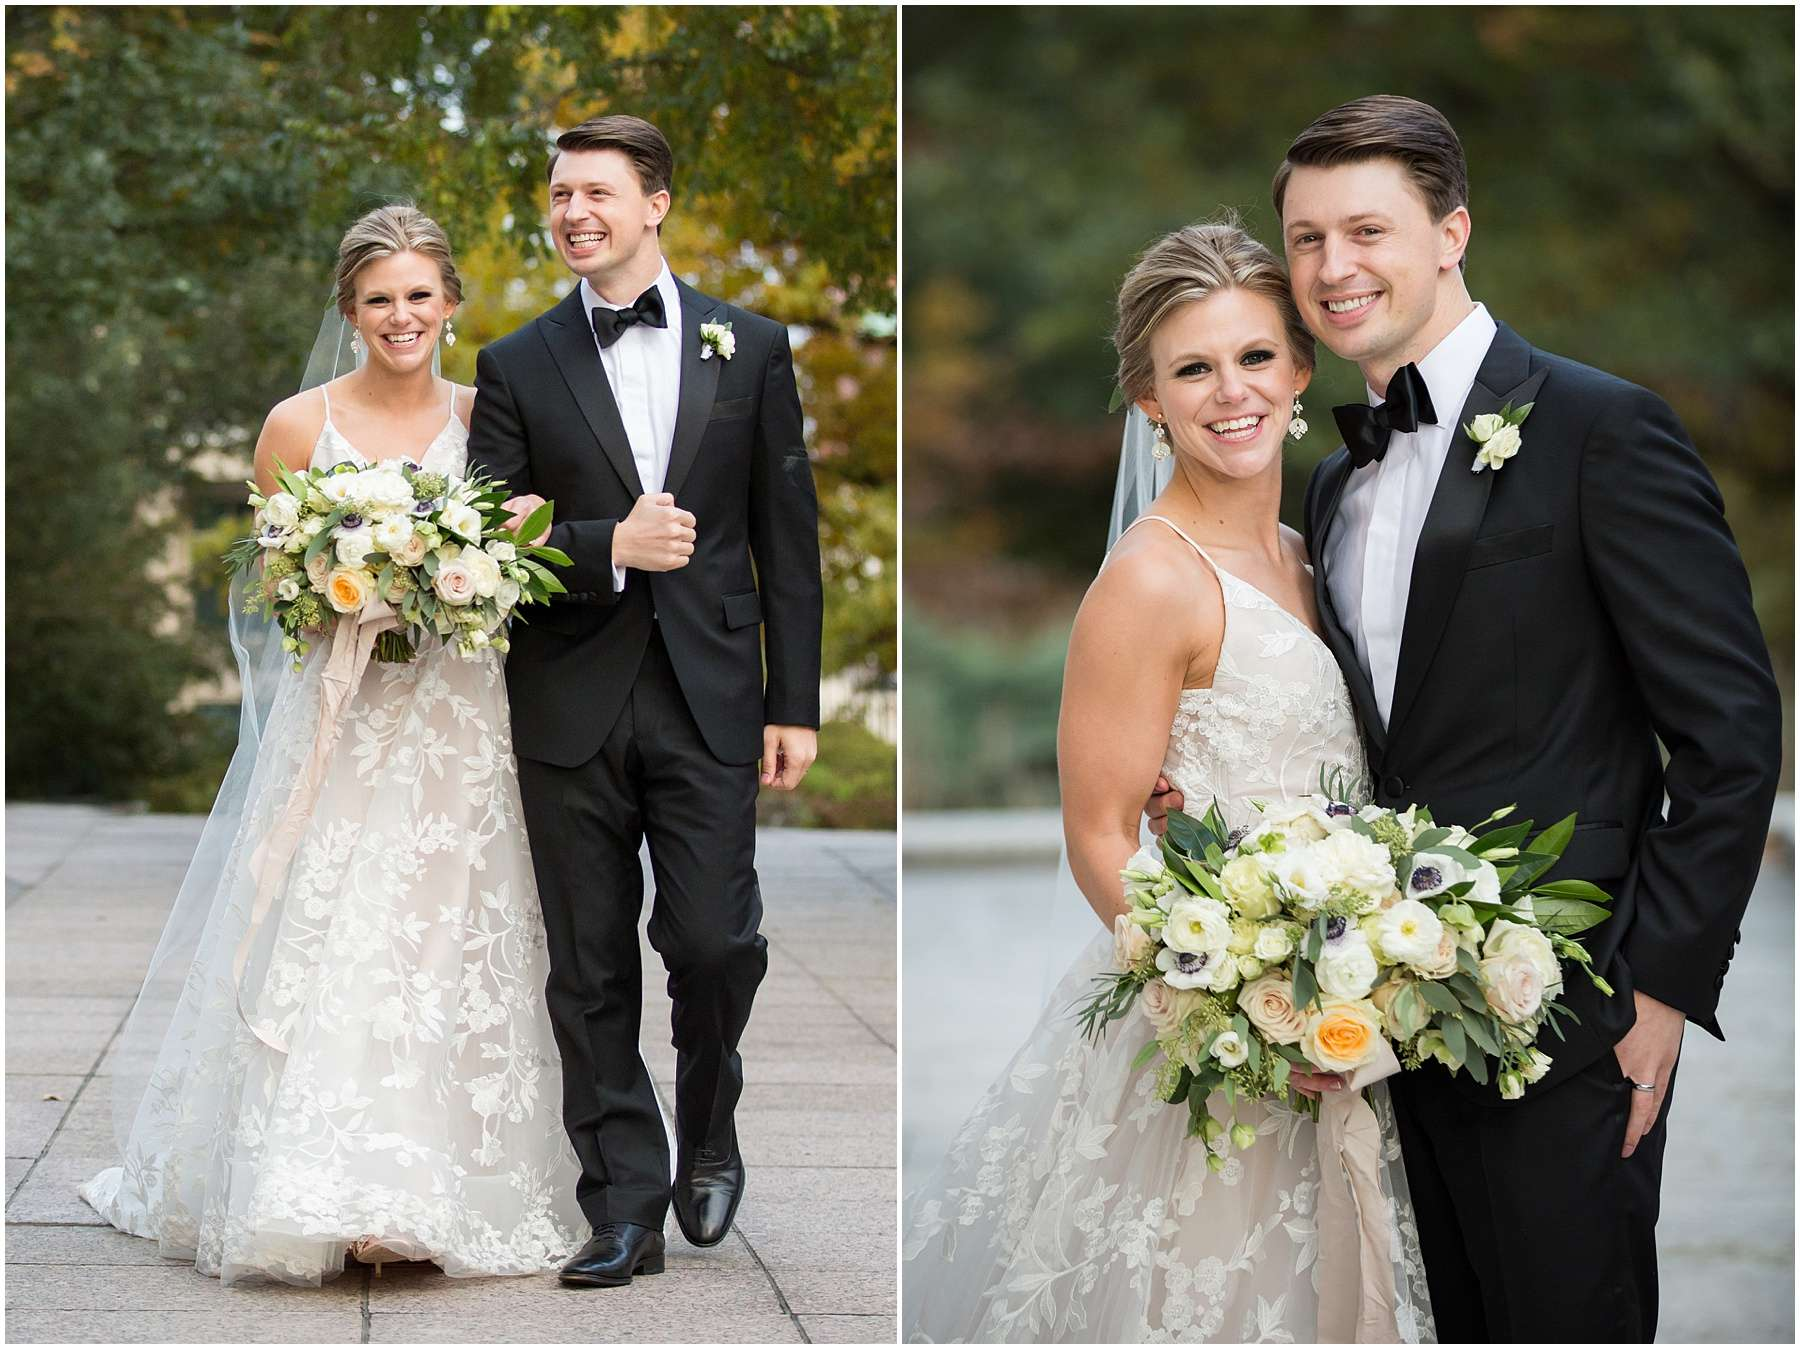 Wedding at the Ohio Statehouse | Columbus Ohio Weddings 150